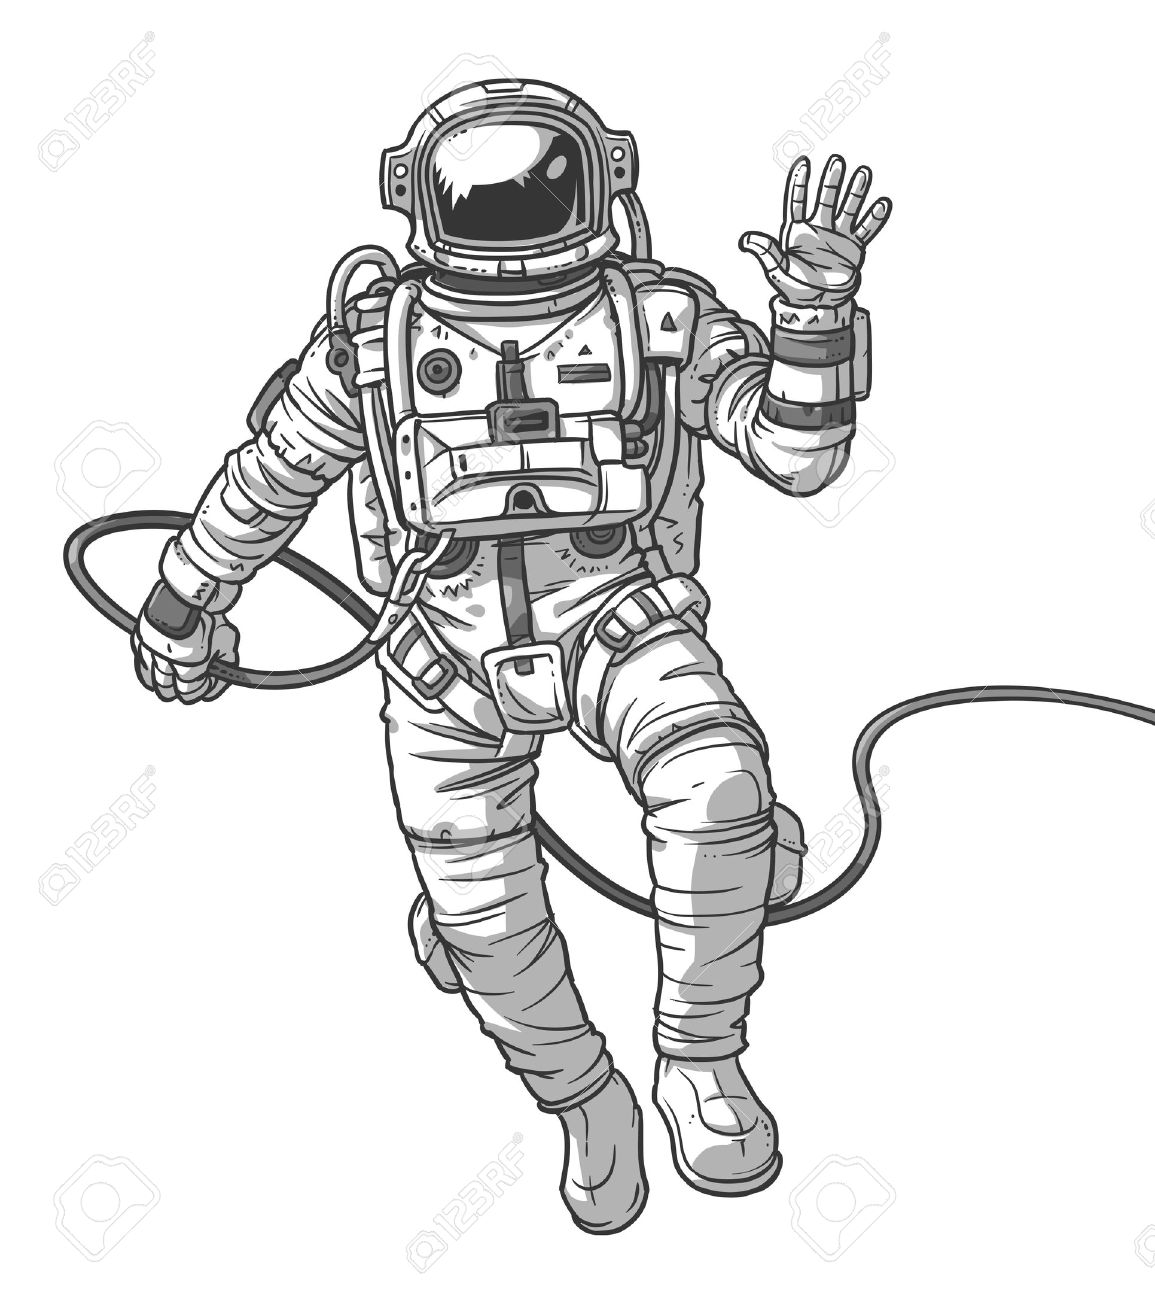 Astronaut Drawing At GetDrawings.com | Free For Personal Use Astronaut Drawing Of Your Choice